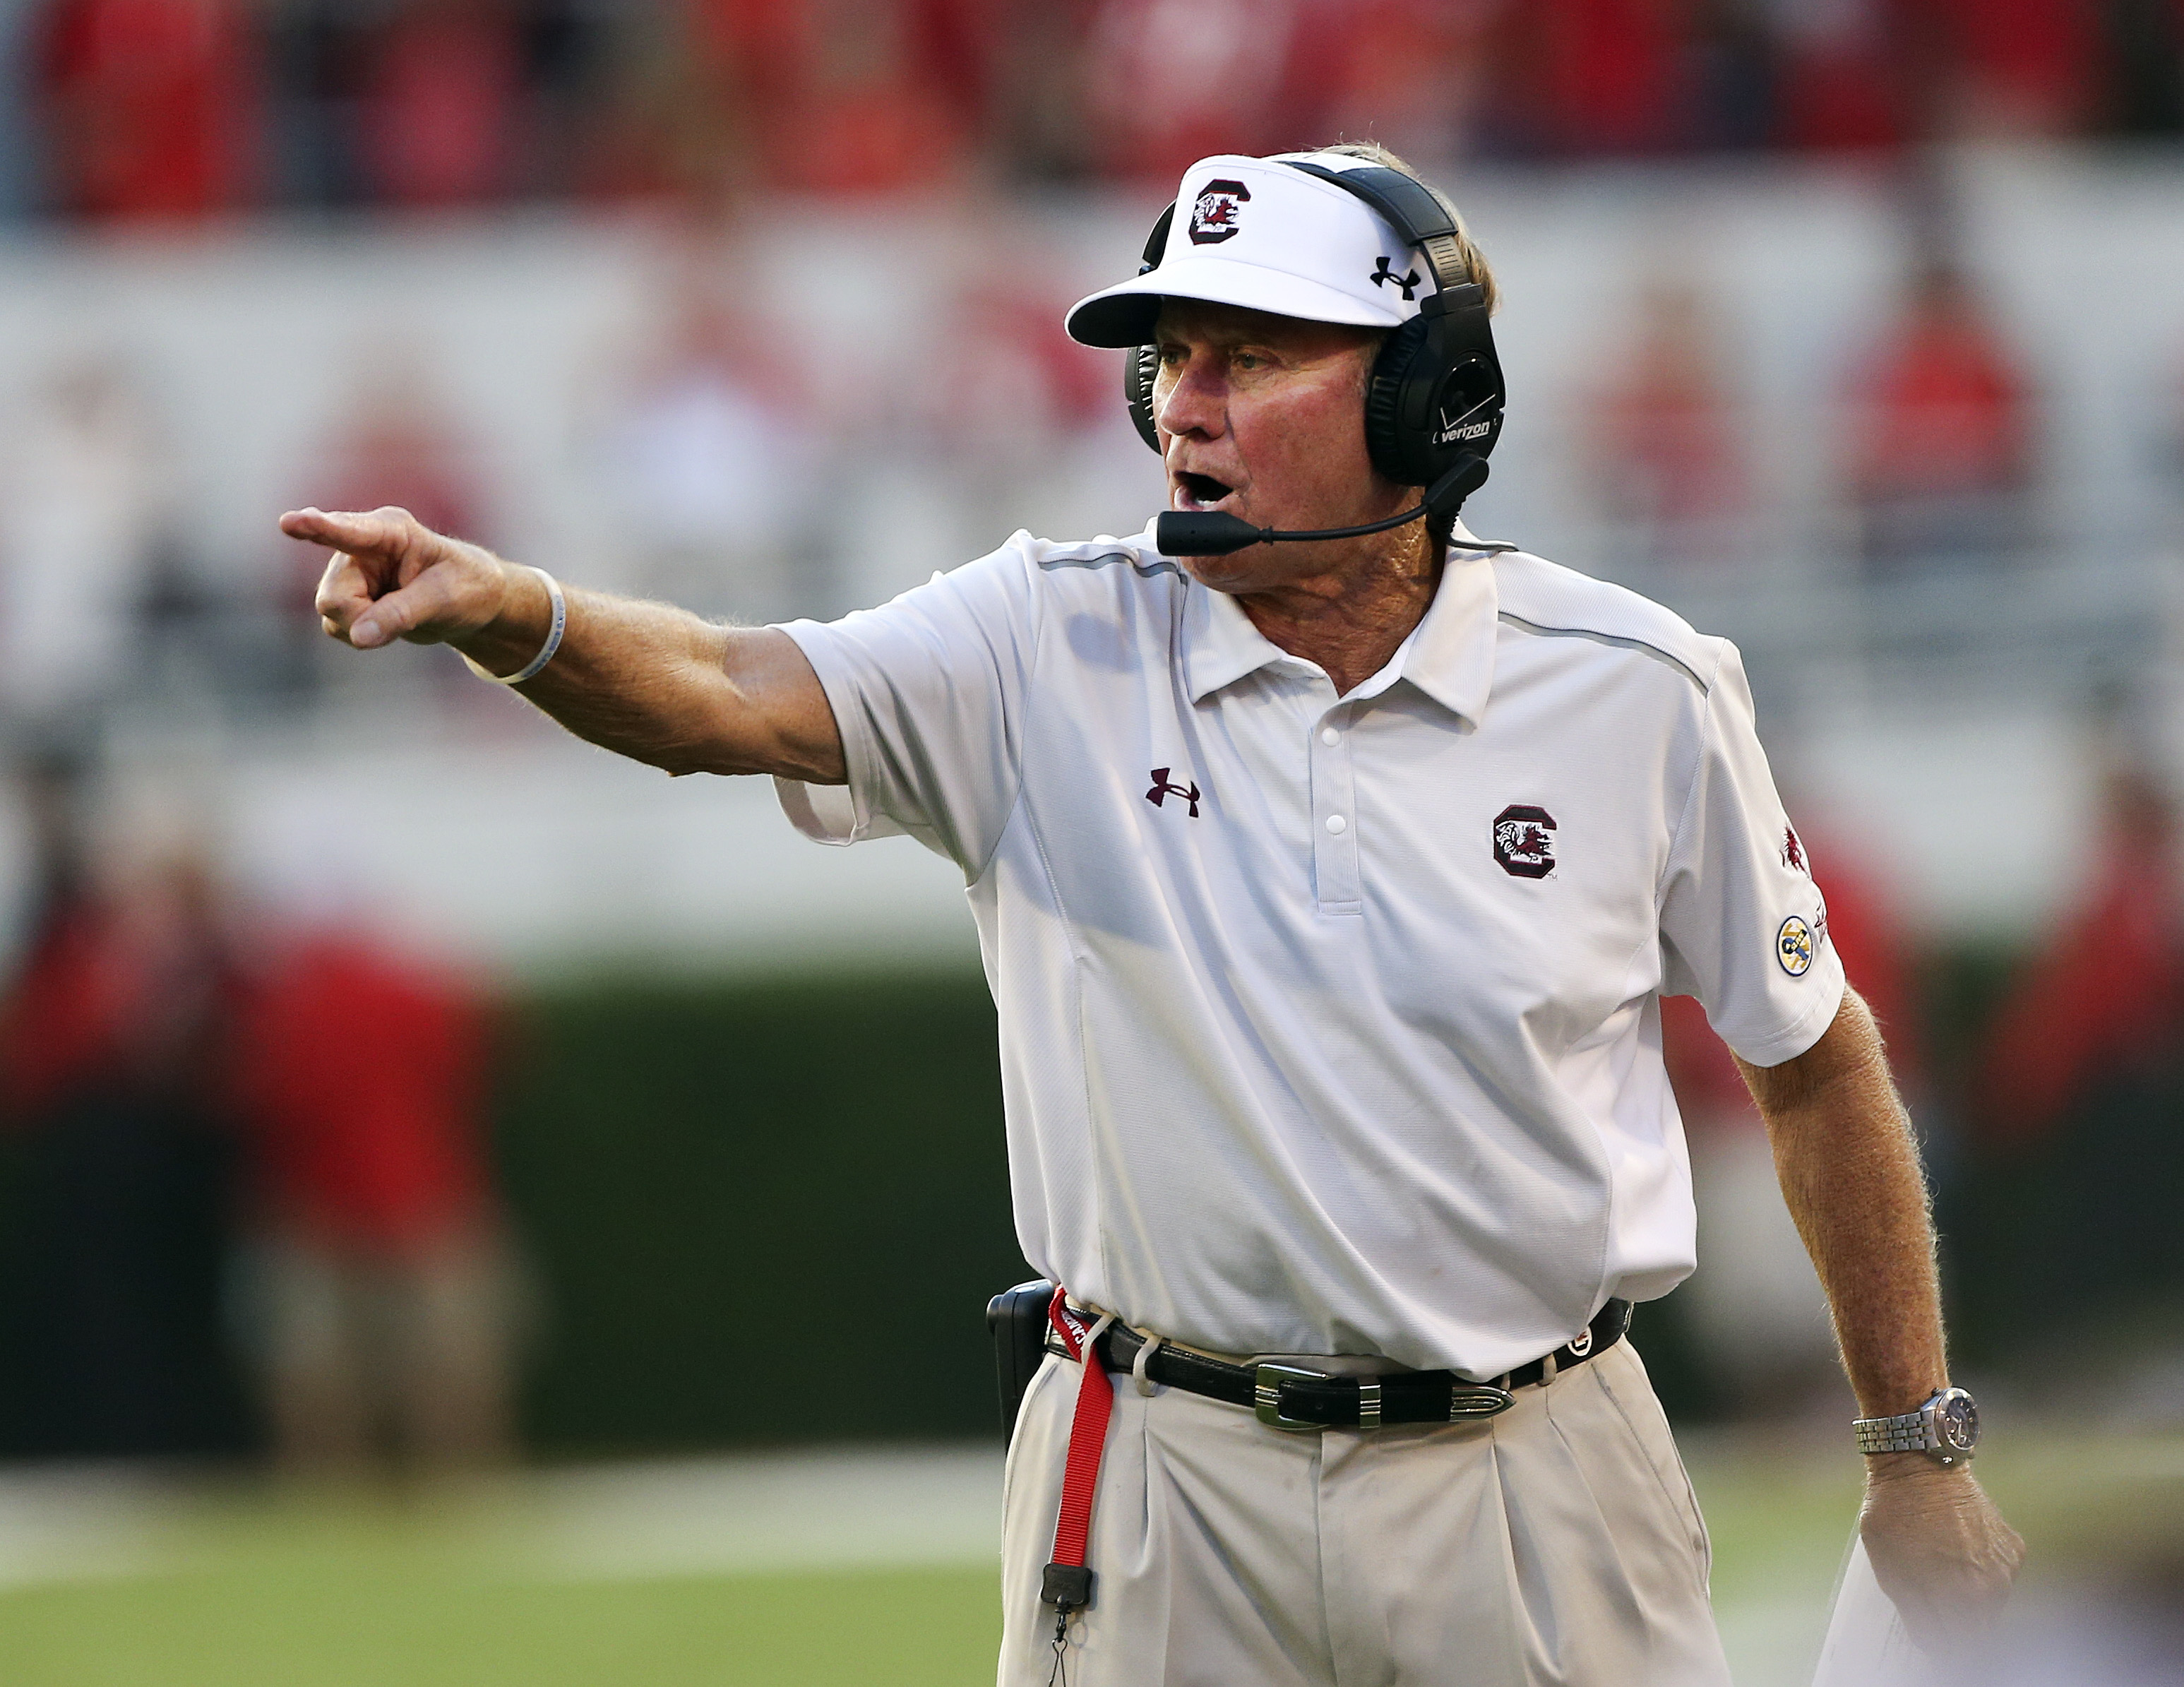 South Carolina coach Steve Spurrier motions to his team from the sideline during the first half of an NCAA college football game against Georgia on Saturday, Sept. 19, 2015, in Athens, Ga. (AP Photo/John Bazemore)